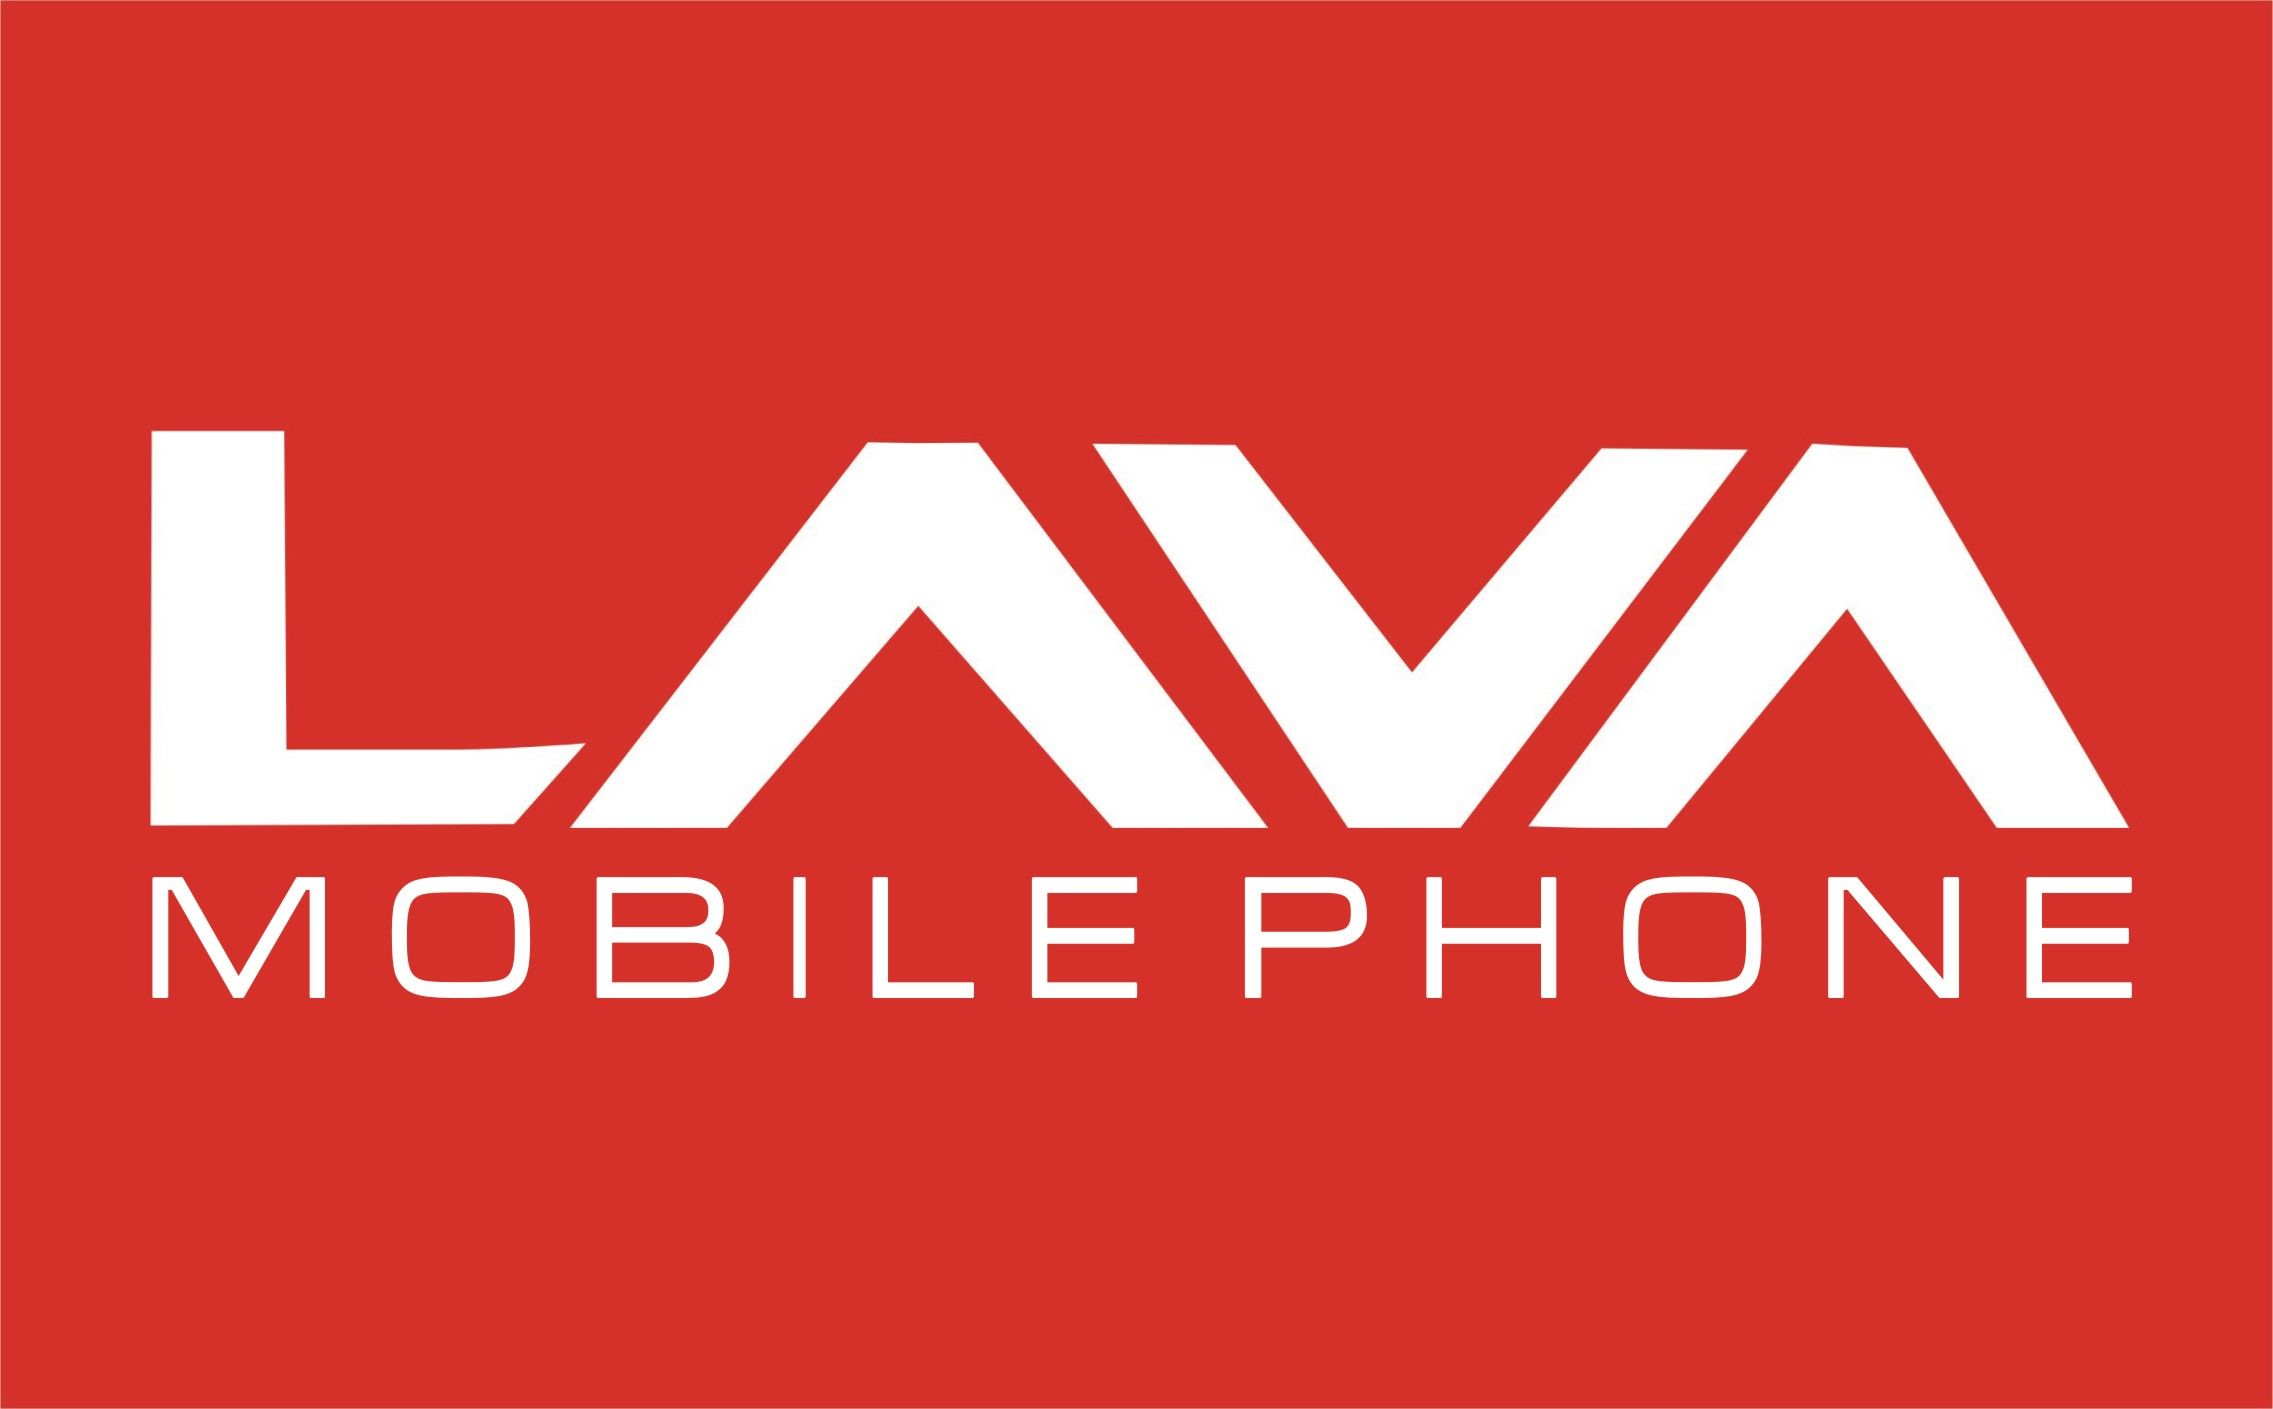 Mobile brand logo google search mobile brand pinterest mobile brand logo google search biocorpaavc Image collections